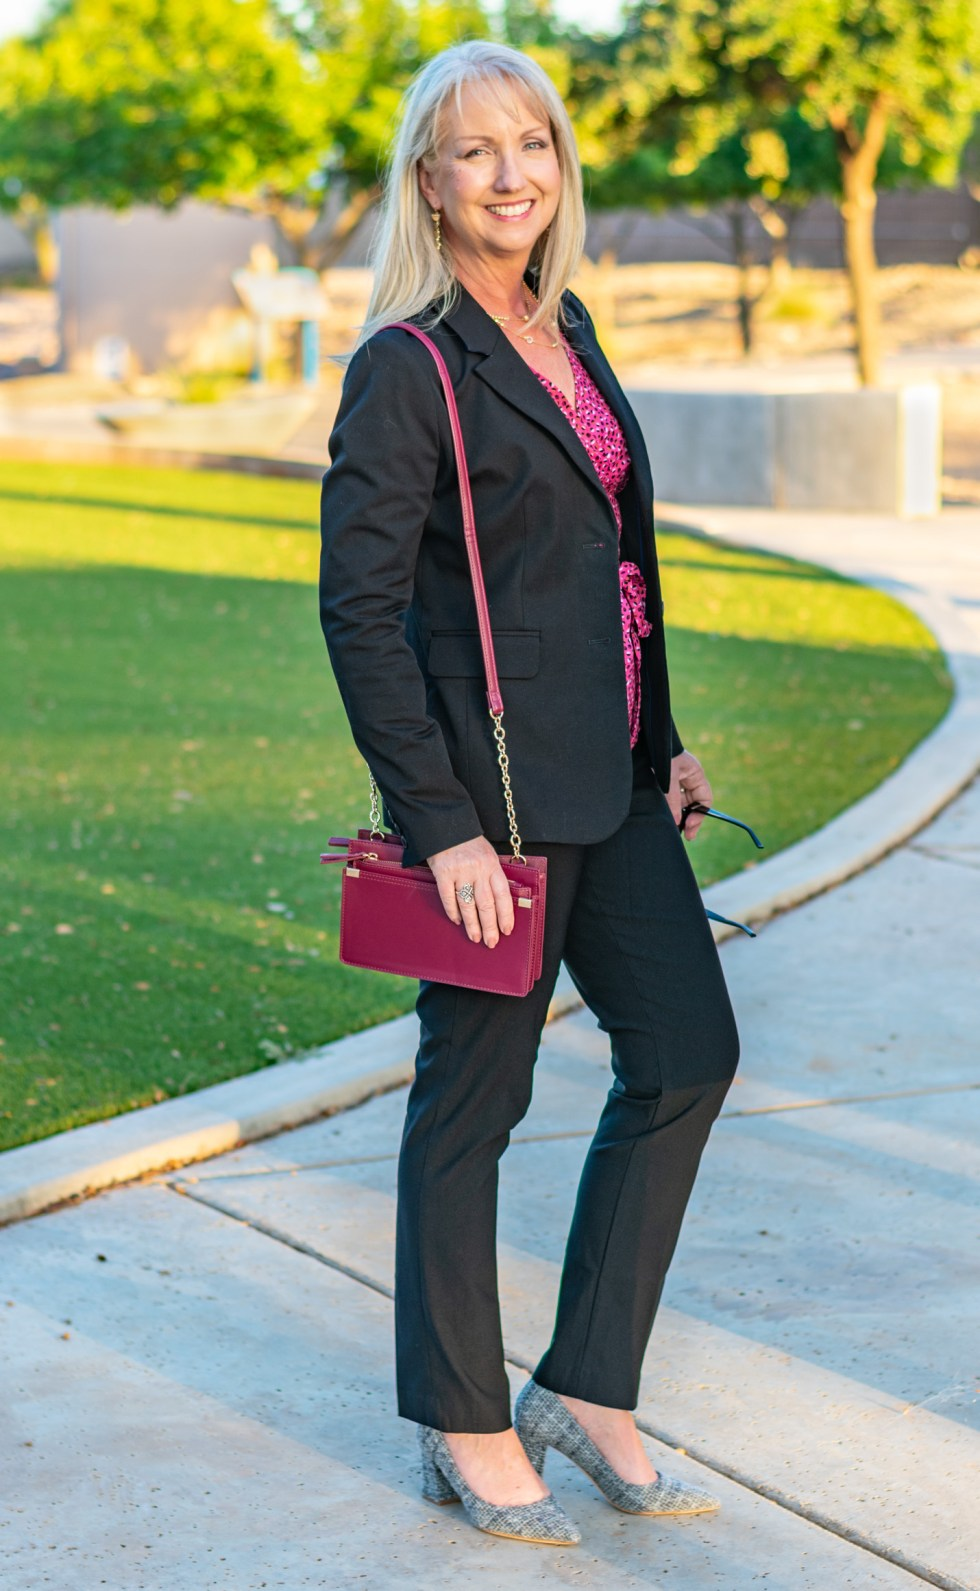 Pretty in Pink and Black for Fall